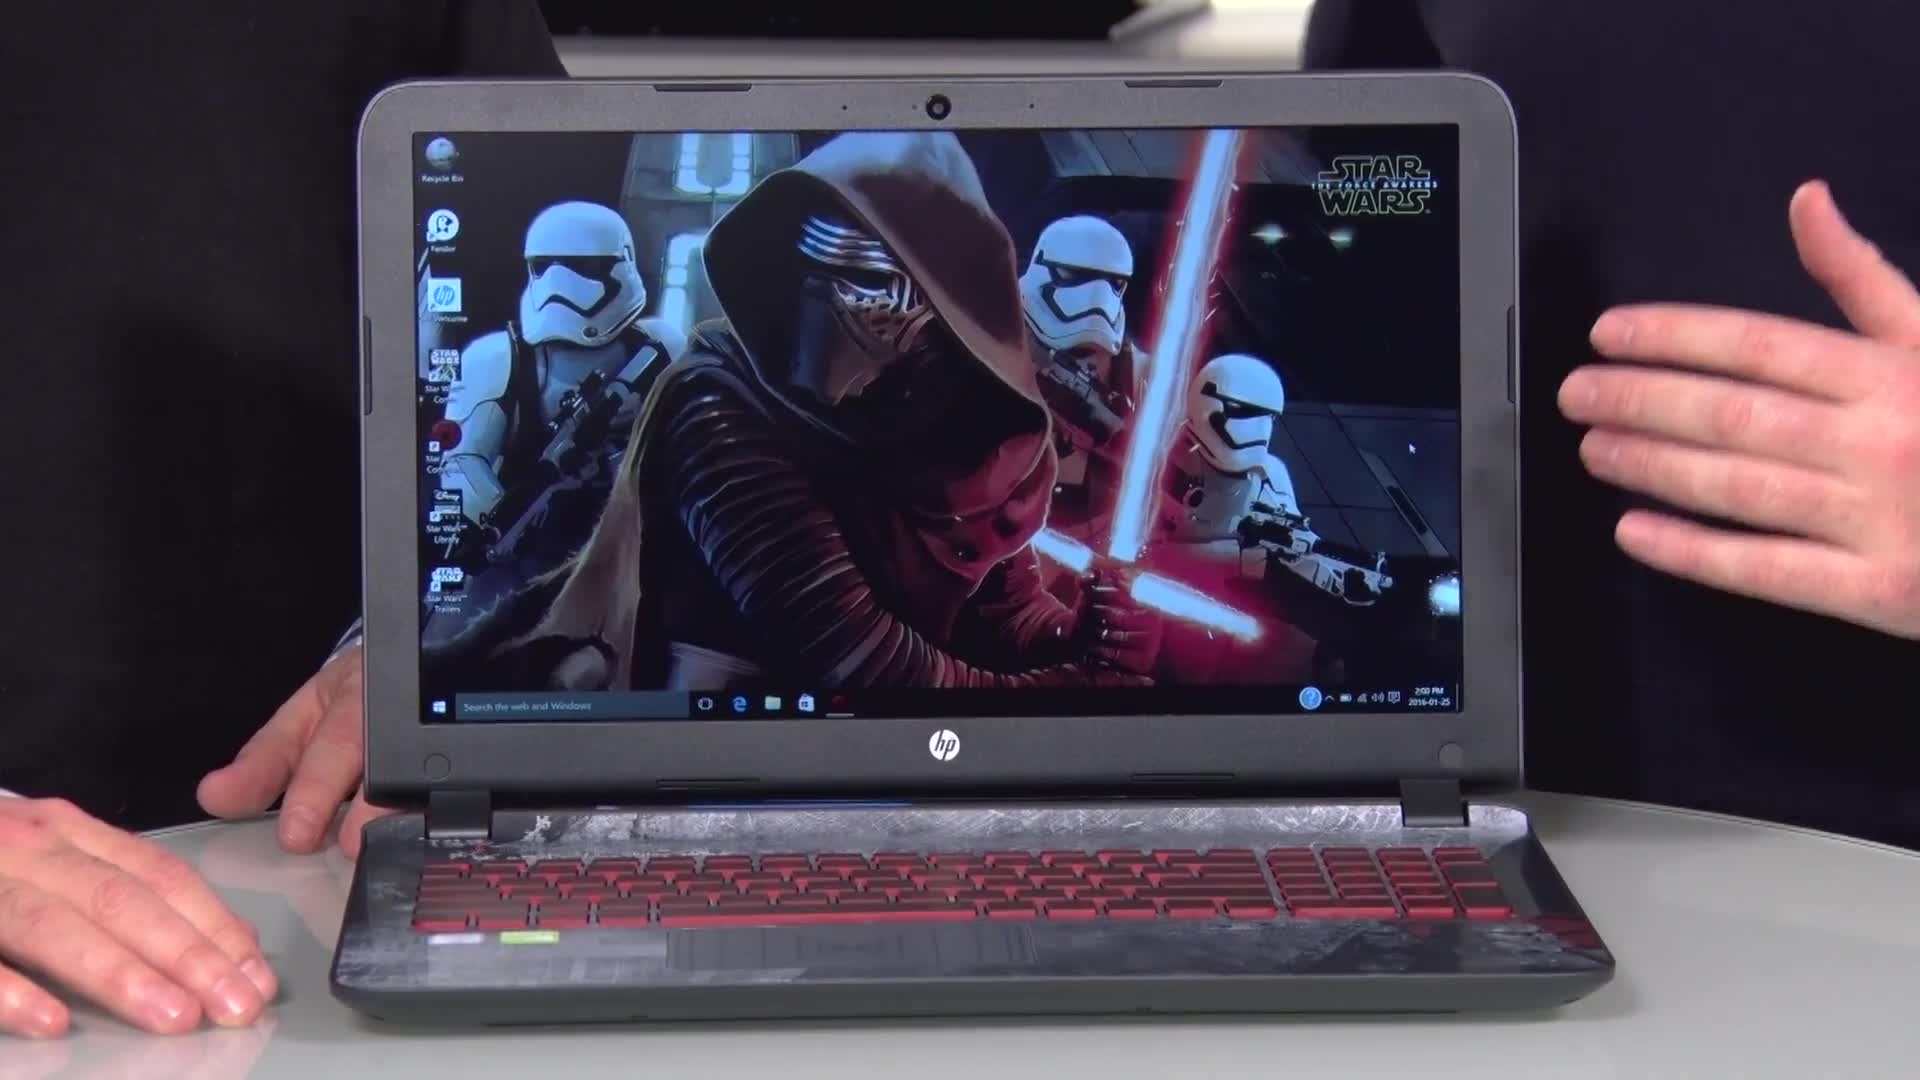 Dream come true! HP Star Wars Special Edition Laptop